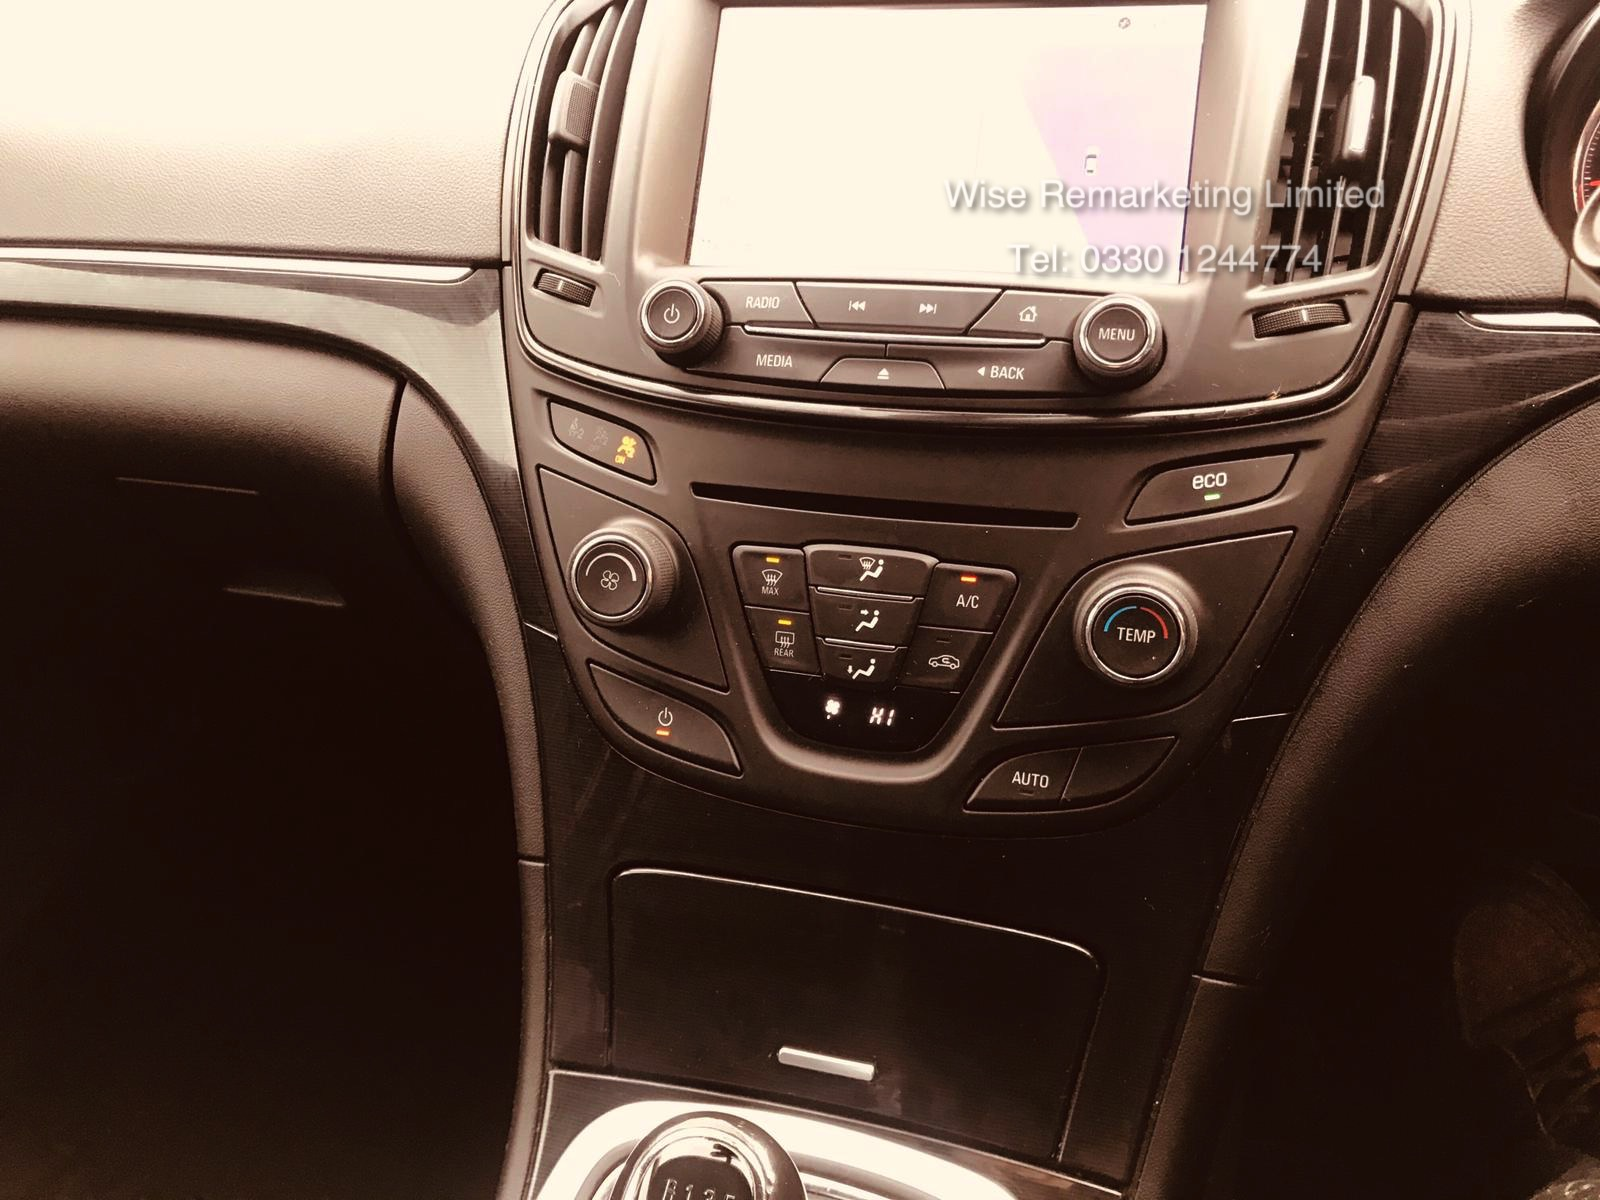 (RESERVE MET) Vauxhall Insignia 2.0 CDTI Techline 6 Speed - 2014 Model - Part Leather - - Image 19 of 20